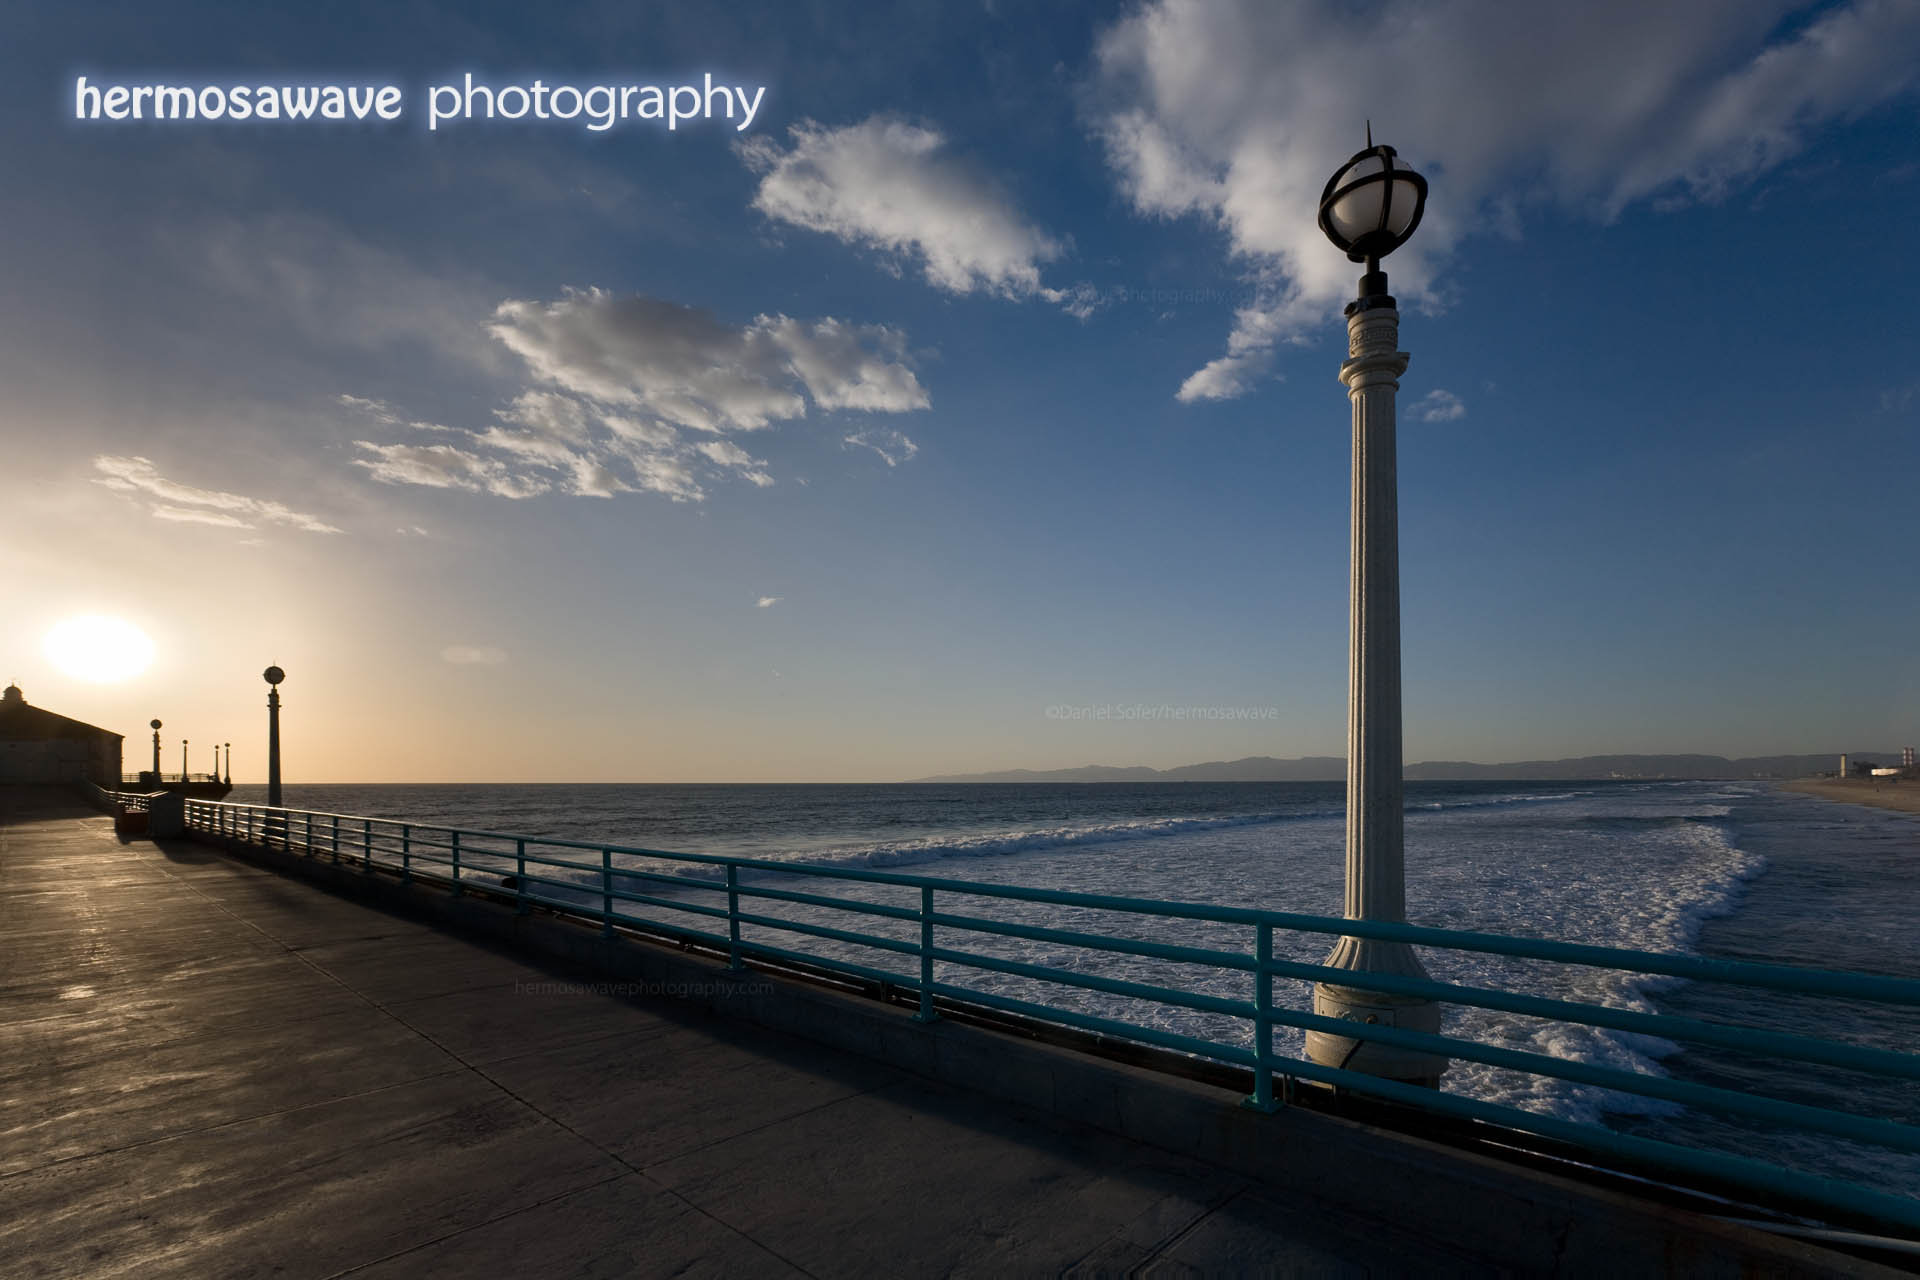 Afternoon at the Manhattan Beach Pier